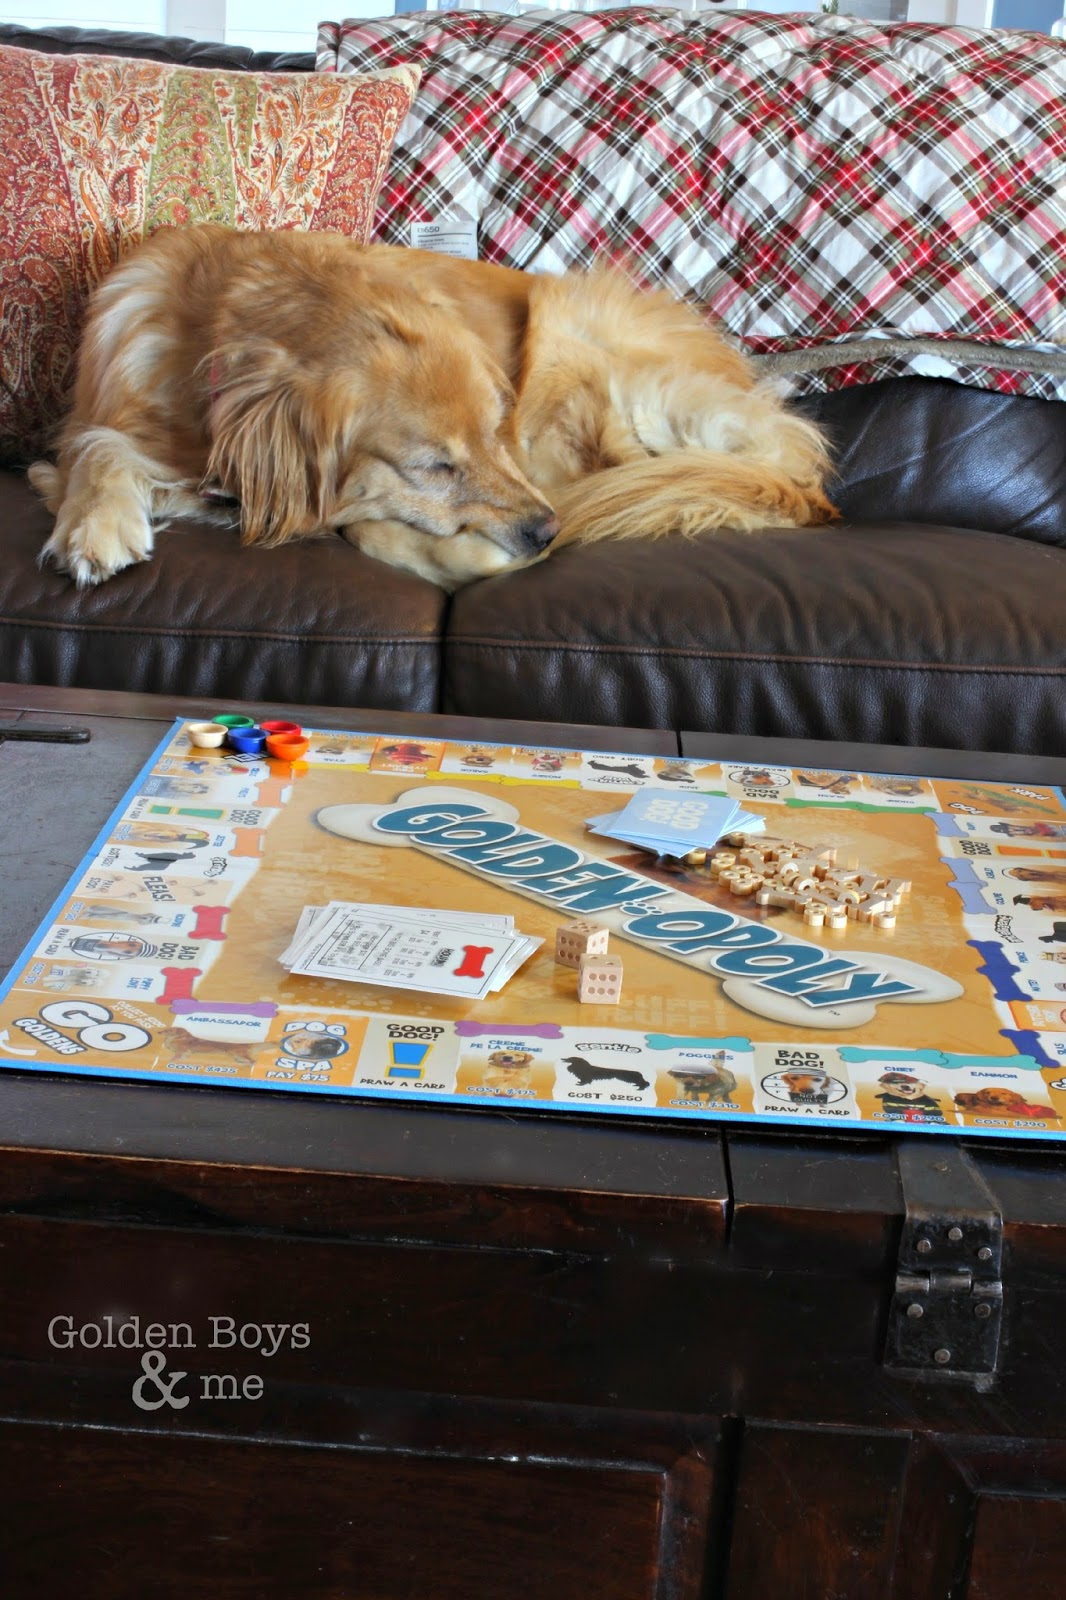 Golden retriever sleeping on brown leather sofa by Golden-poly game-www.goldenboysandme.com